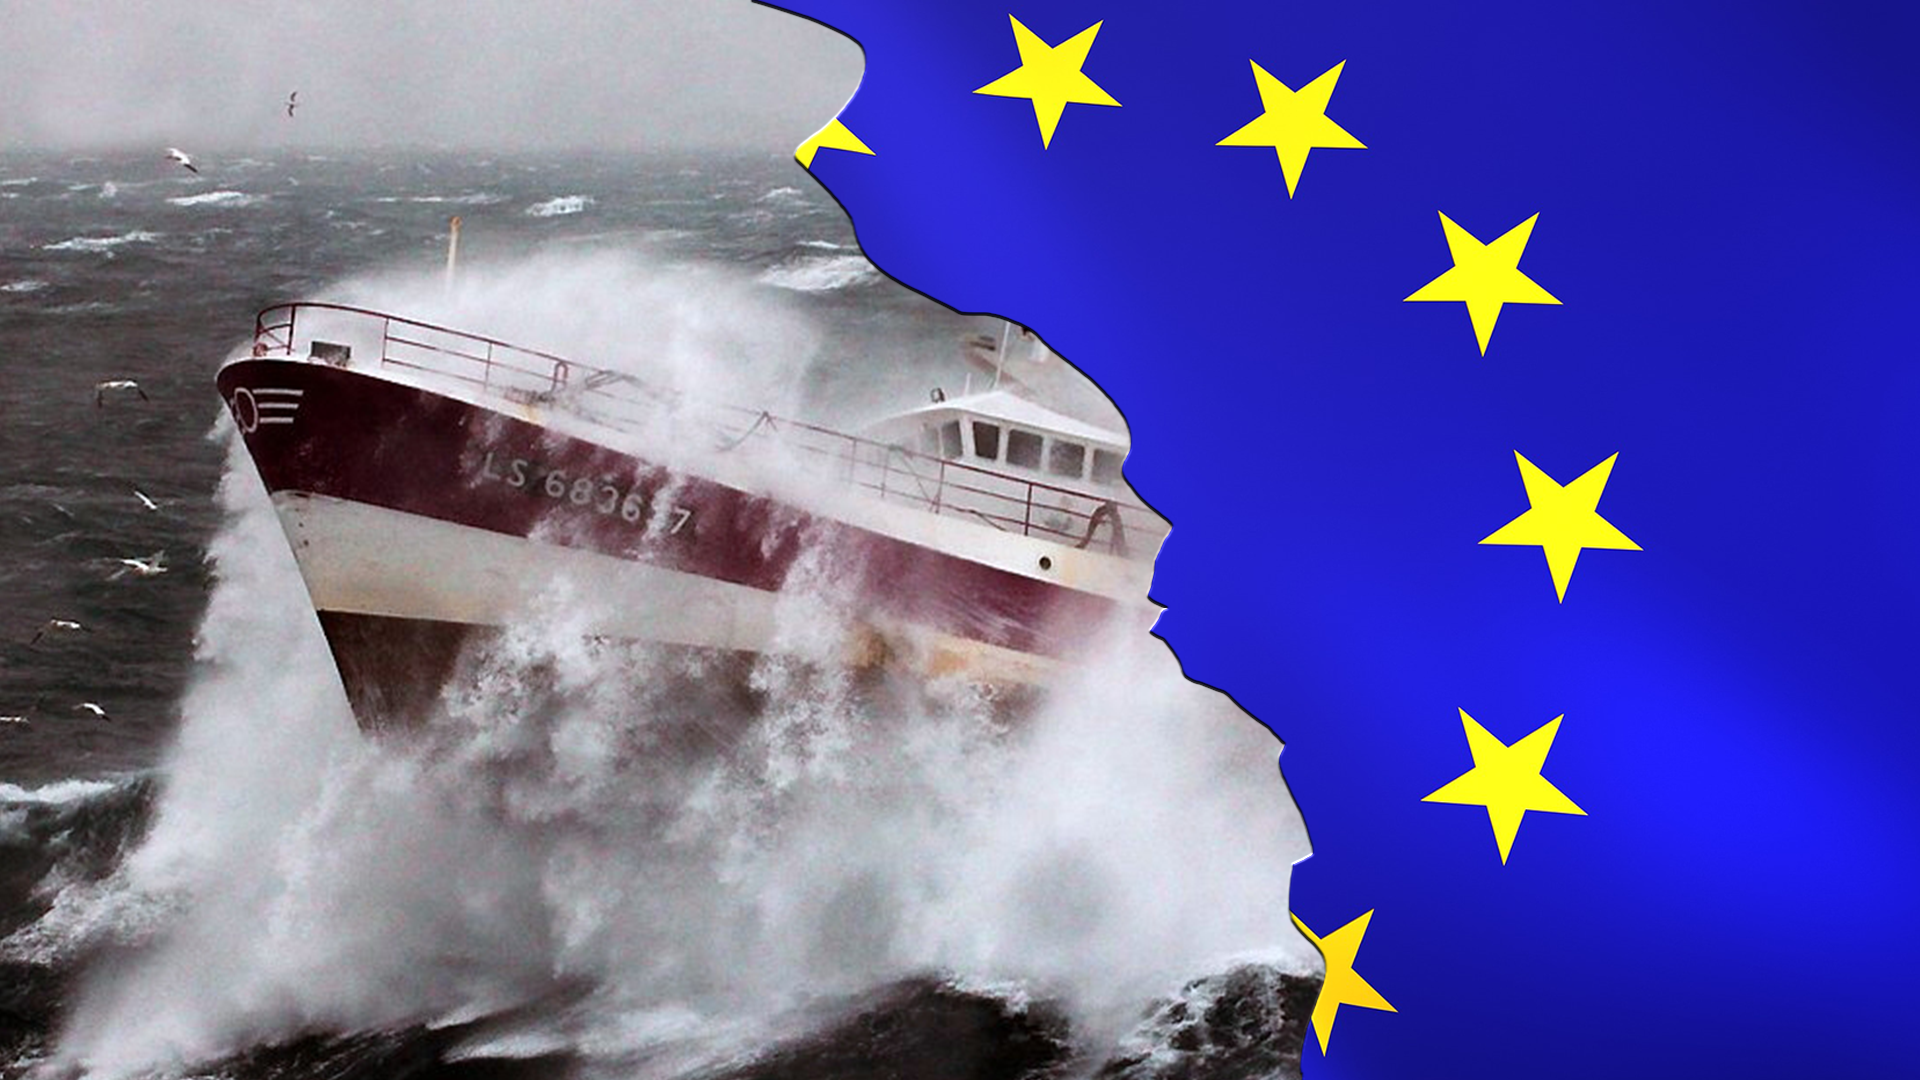 European Union flag super imposed, broken on top of a fishing boat in rough water